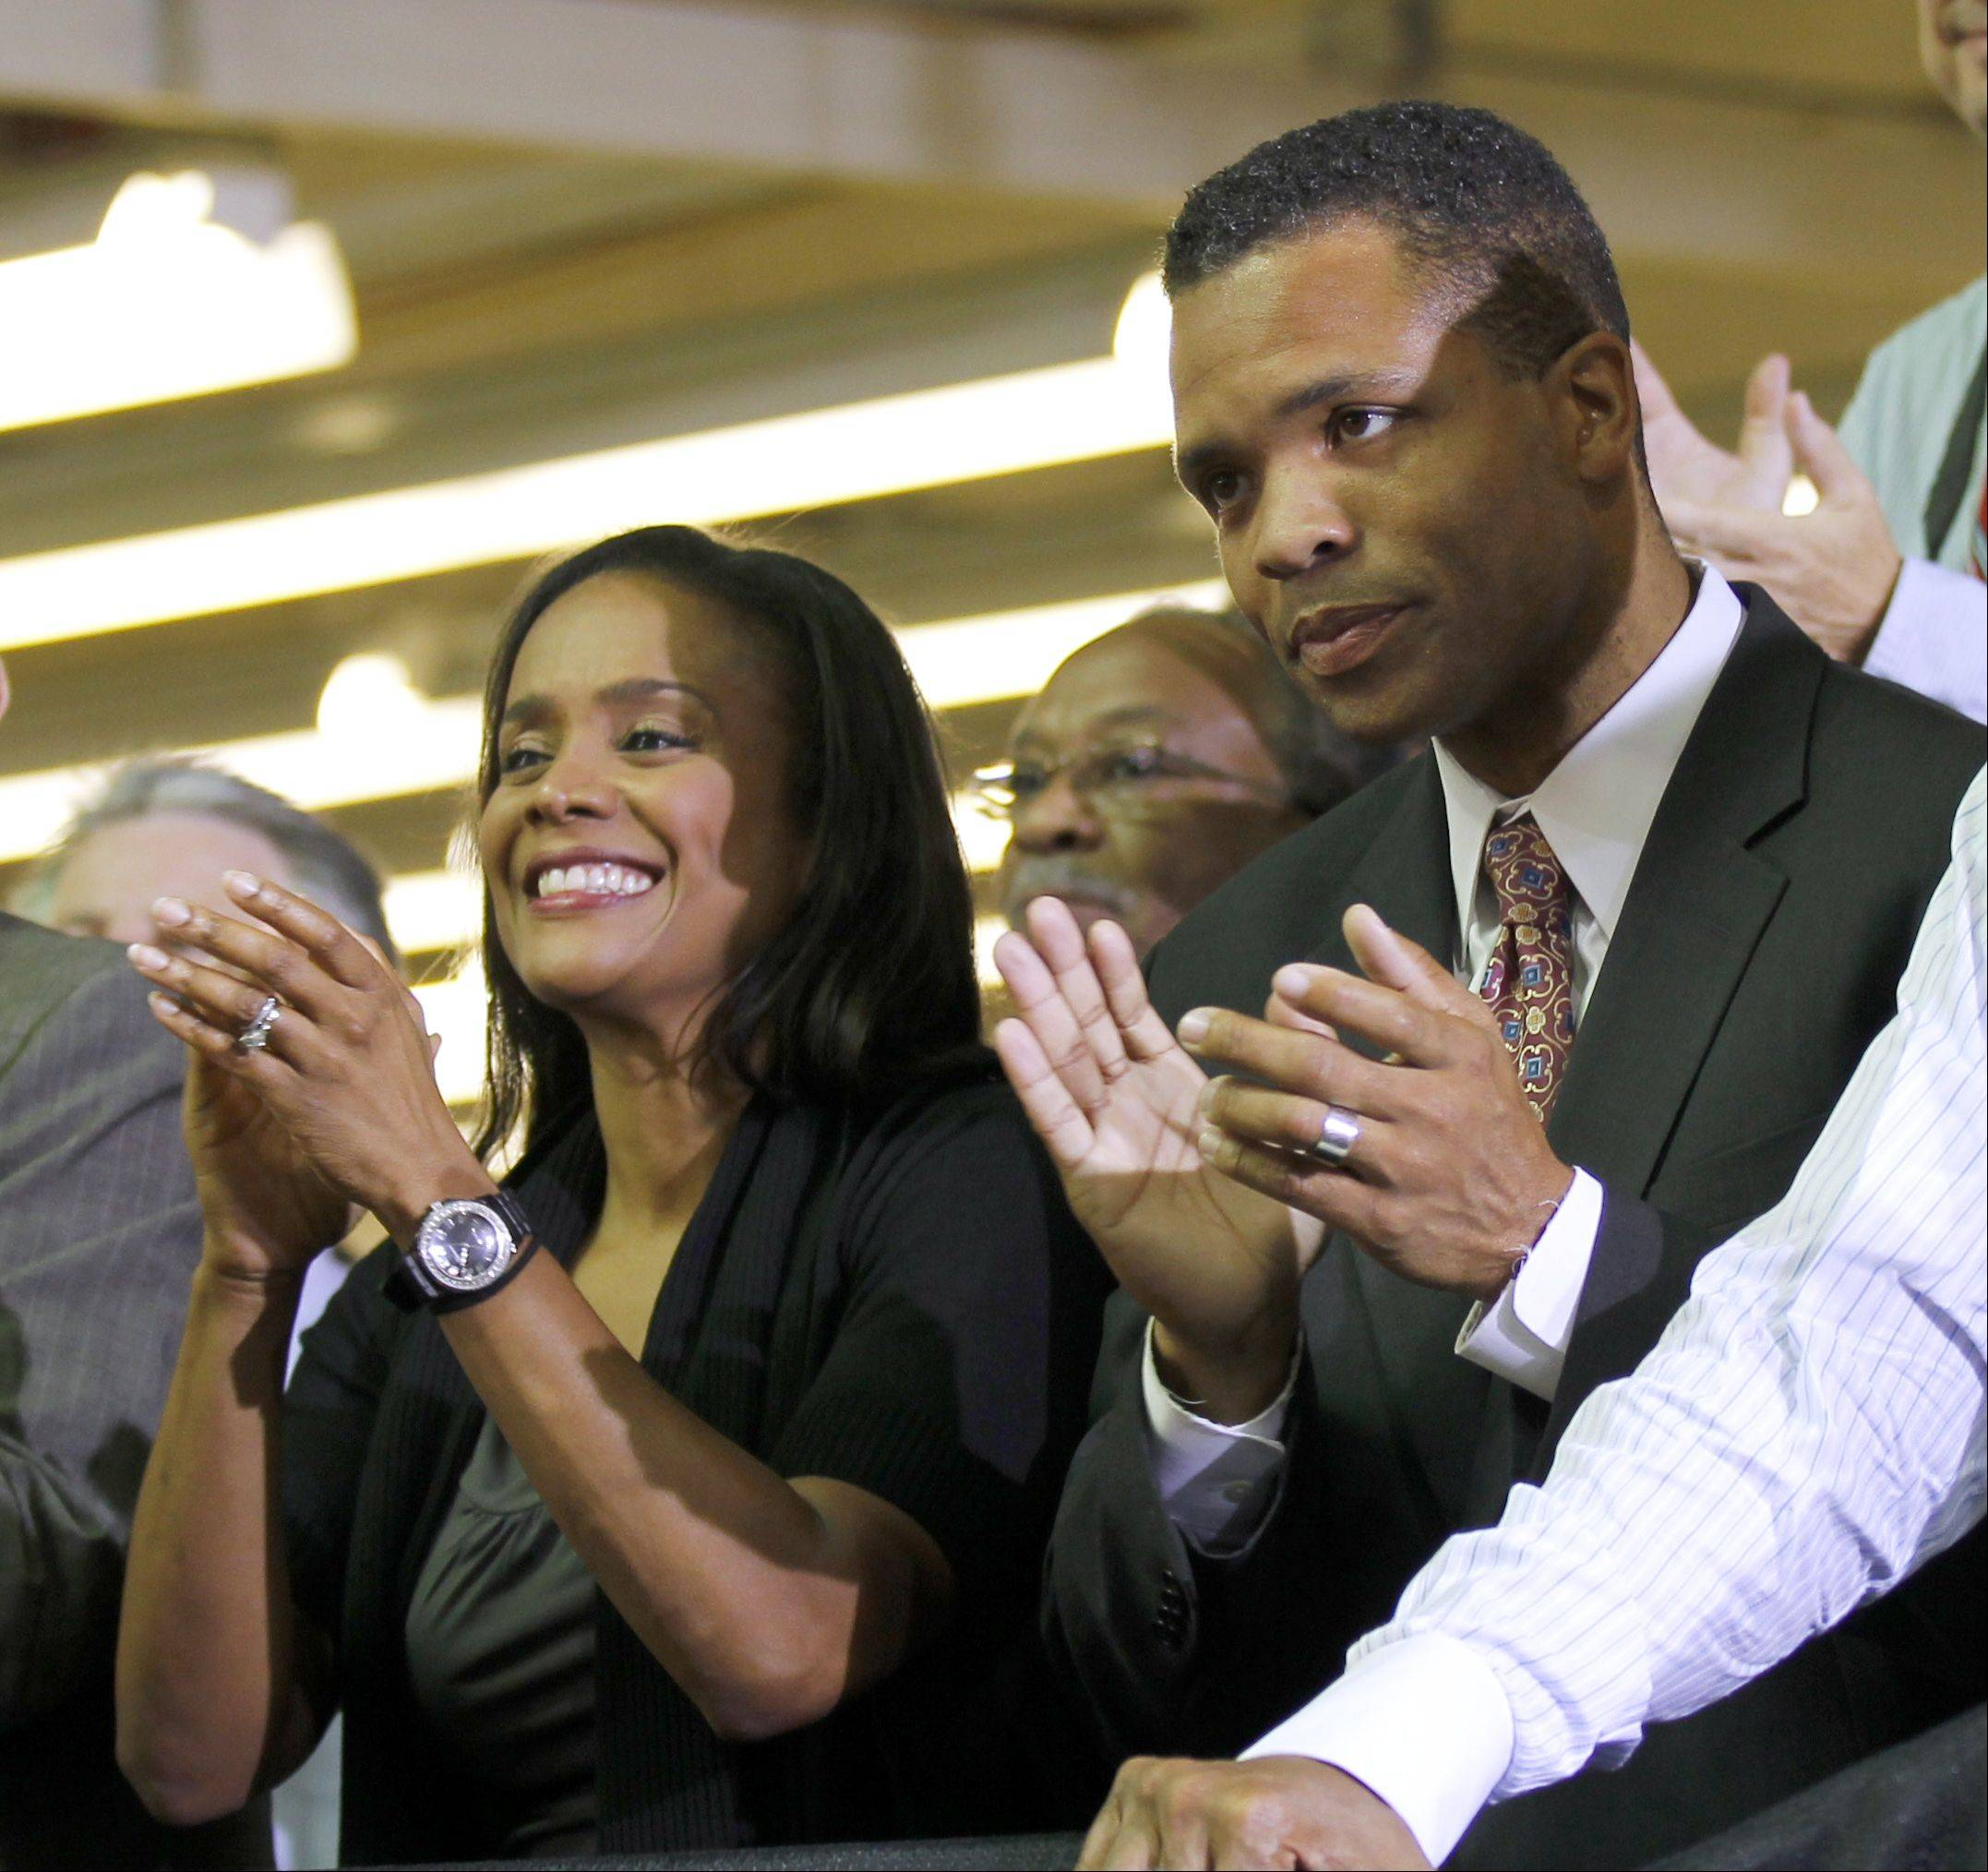 Former Chicago Alderman Sandi Jackson and former Congressman Jesse Jackson Jr. applaud as President Barack Obama is introduced at a city Ford plant in 2010. Sandi Jackson resigned office last month, saying she couldn�t adequately represent her ward while dealing with �very painful health matters.� The former congressman resigned in November and has been under federal investigation.